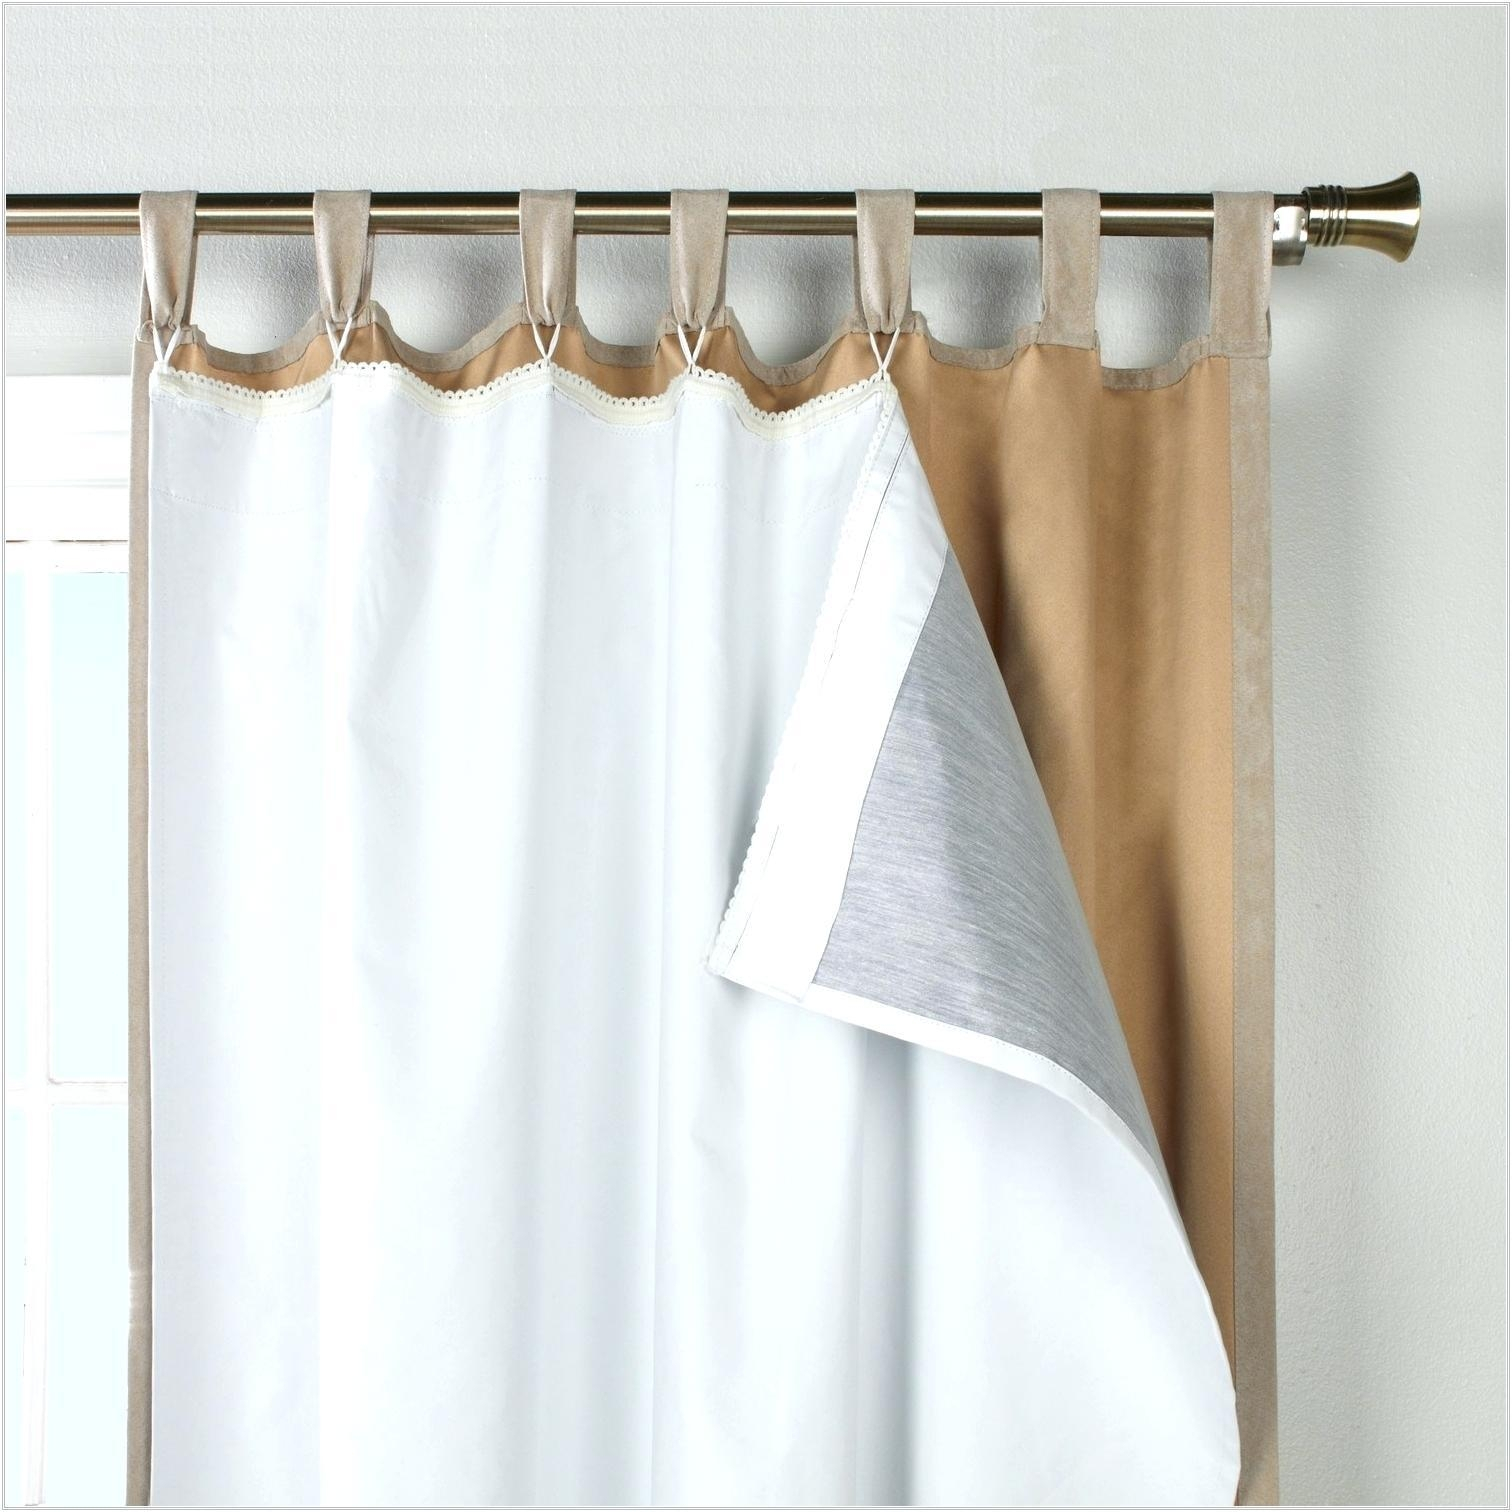 Canopy Microfiber Shower Curtain Liner • Shower Curtains Ideas